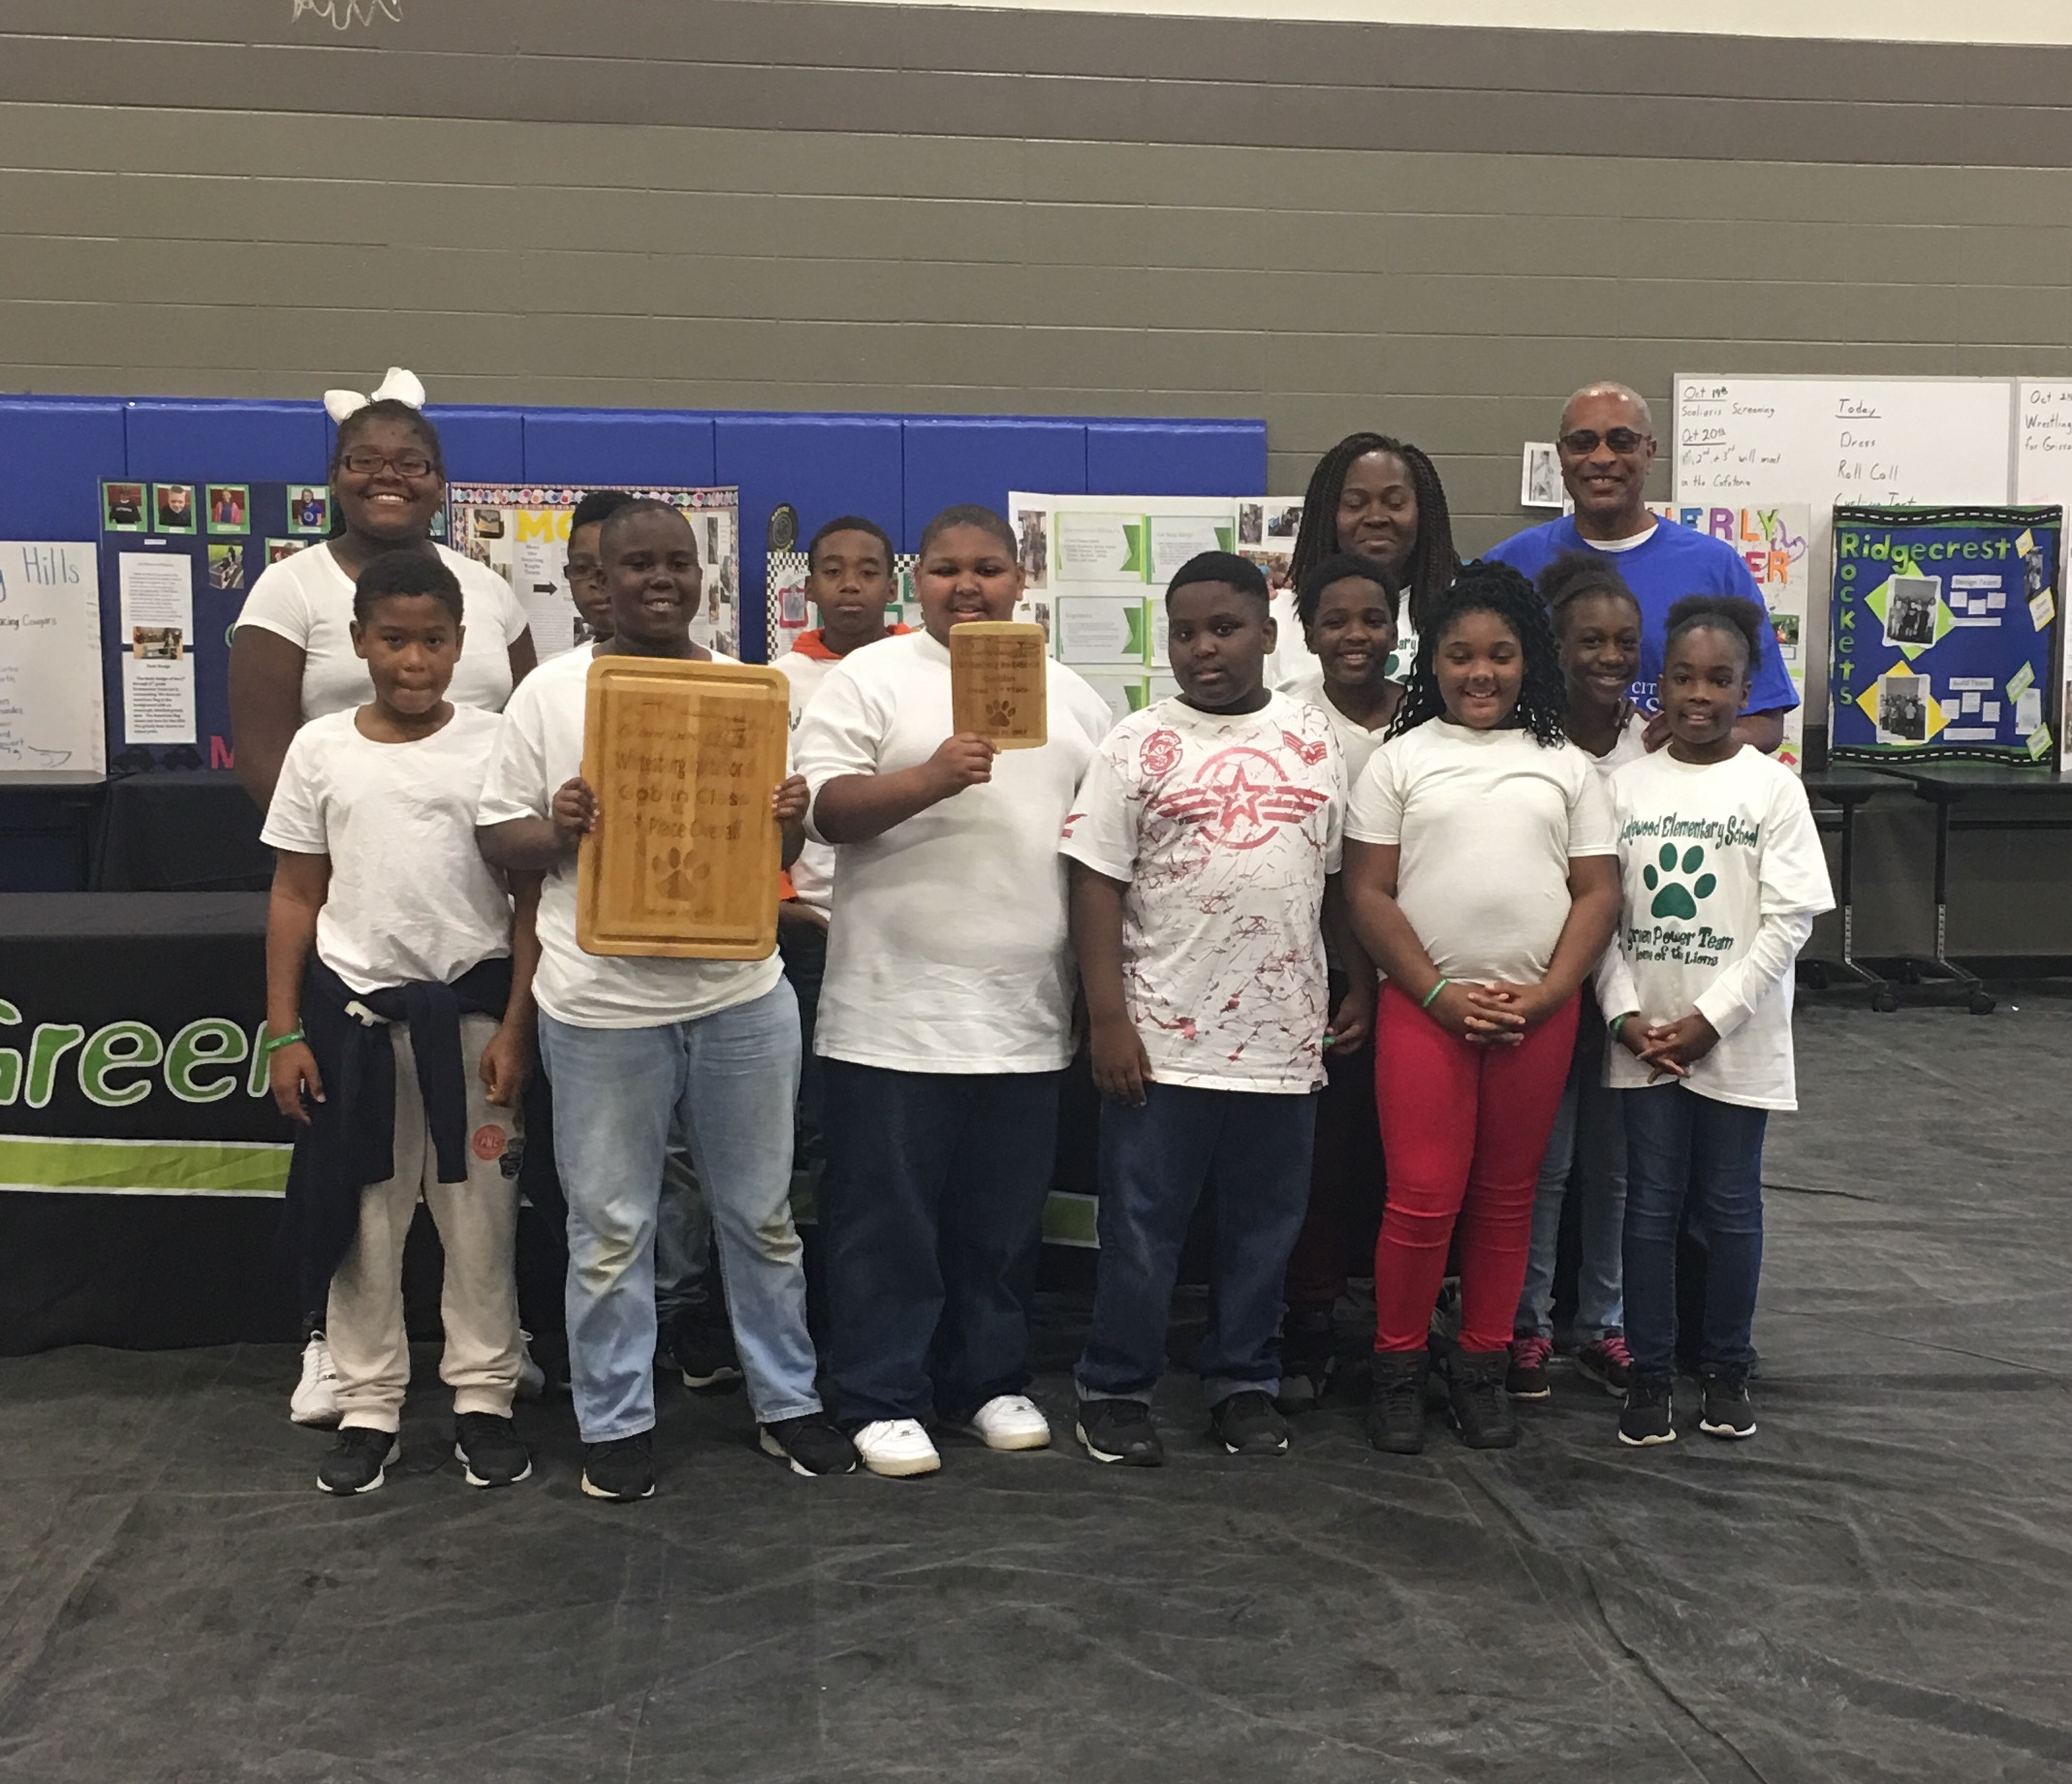 A group picture of the Lakewood Green Power Team with Mrs. Hannah and Mr. Barnes